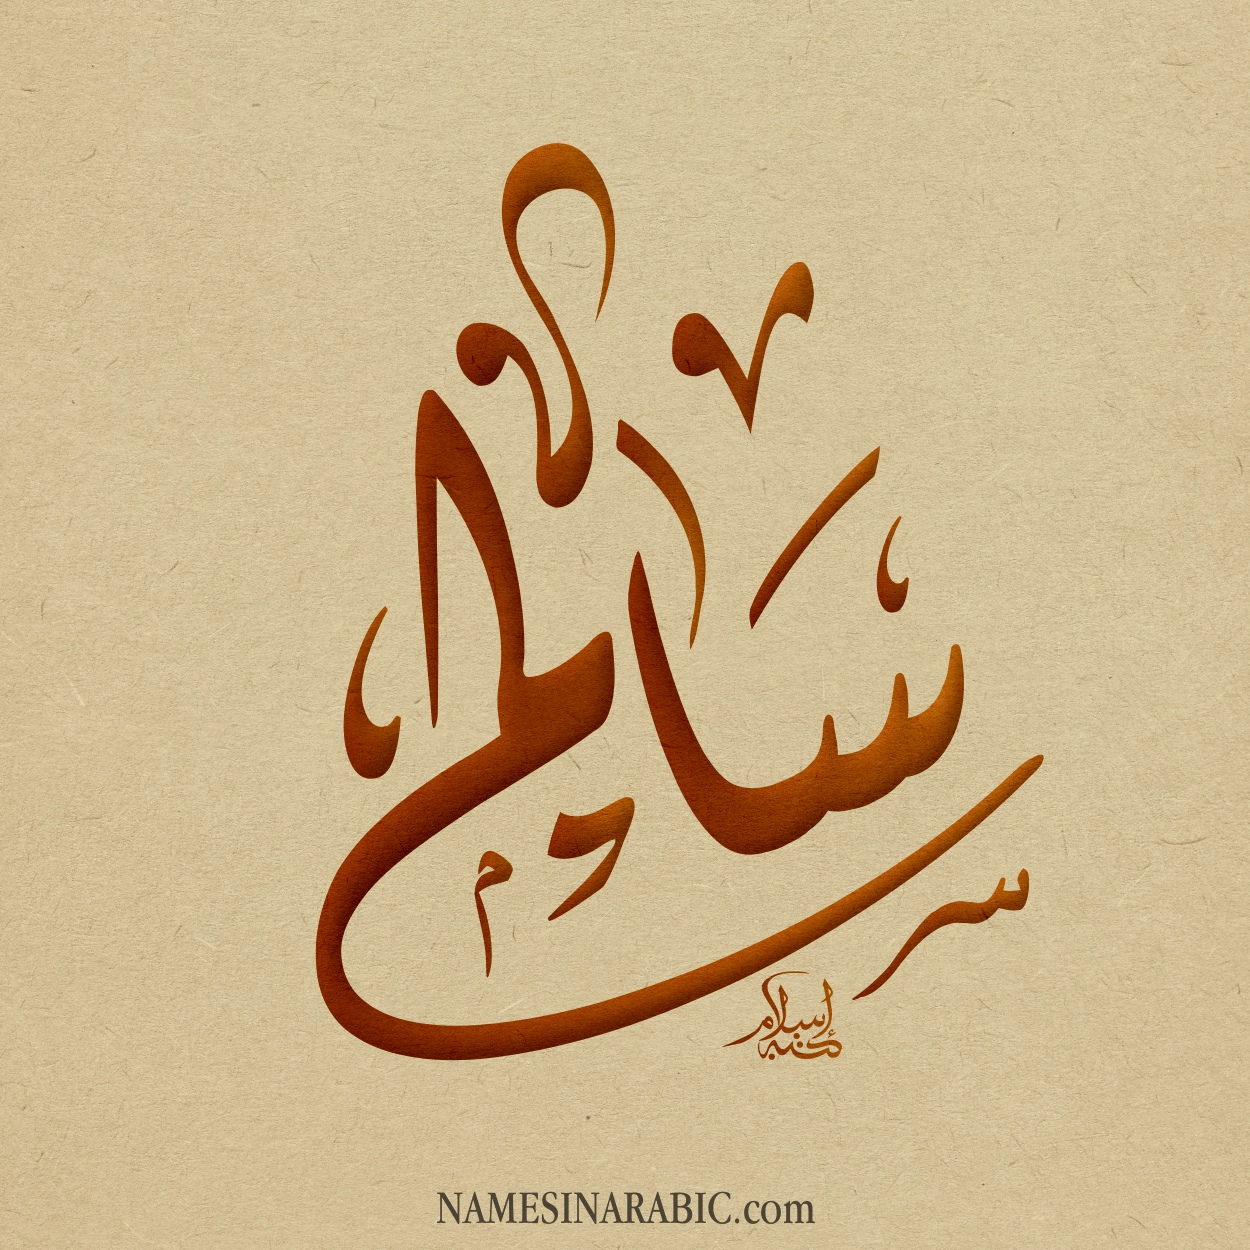 Salim-Name-in-Arabic-Diwani-Calligraphy.jpg